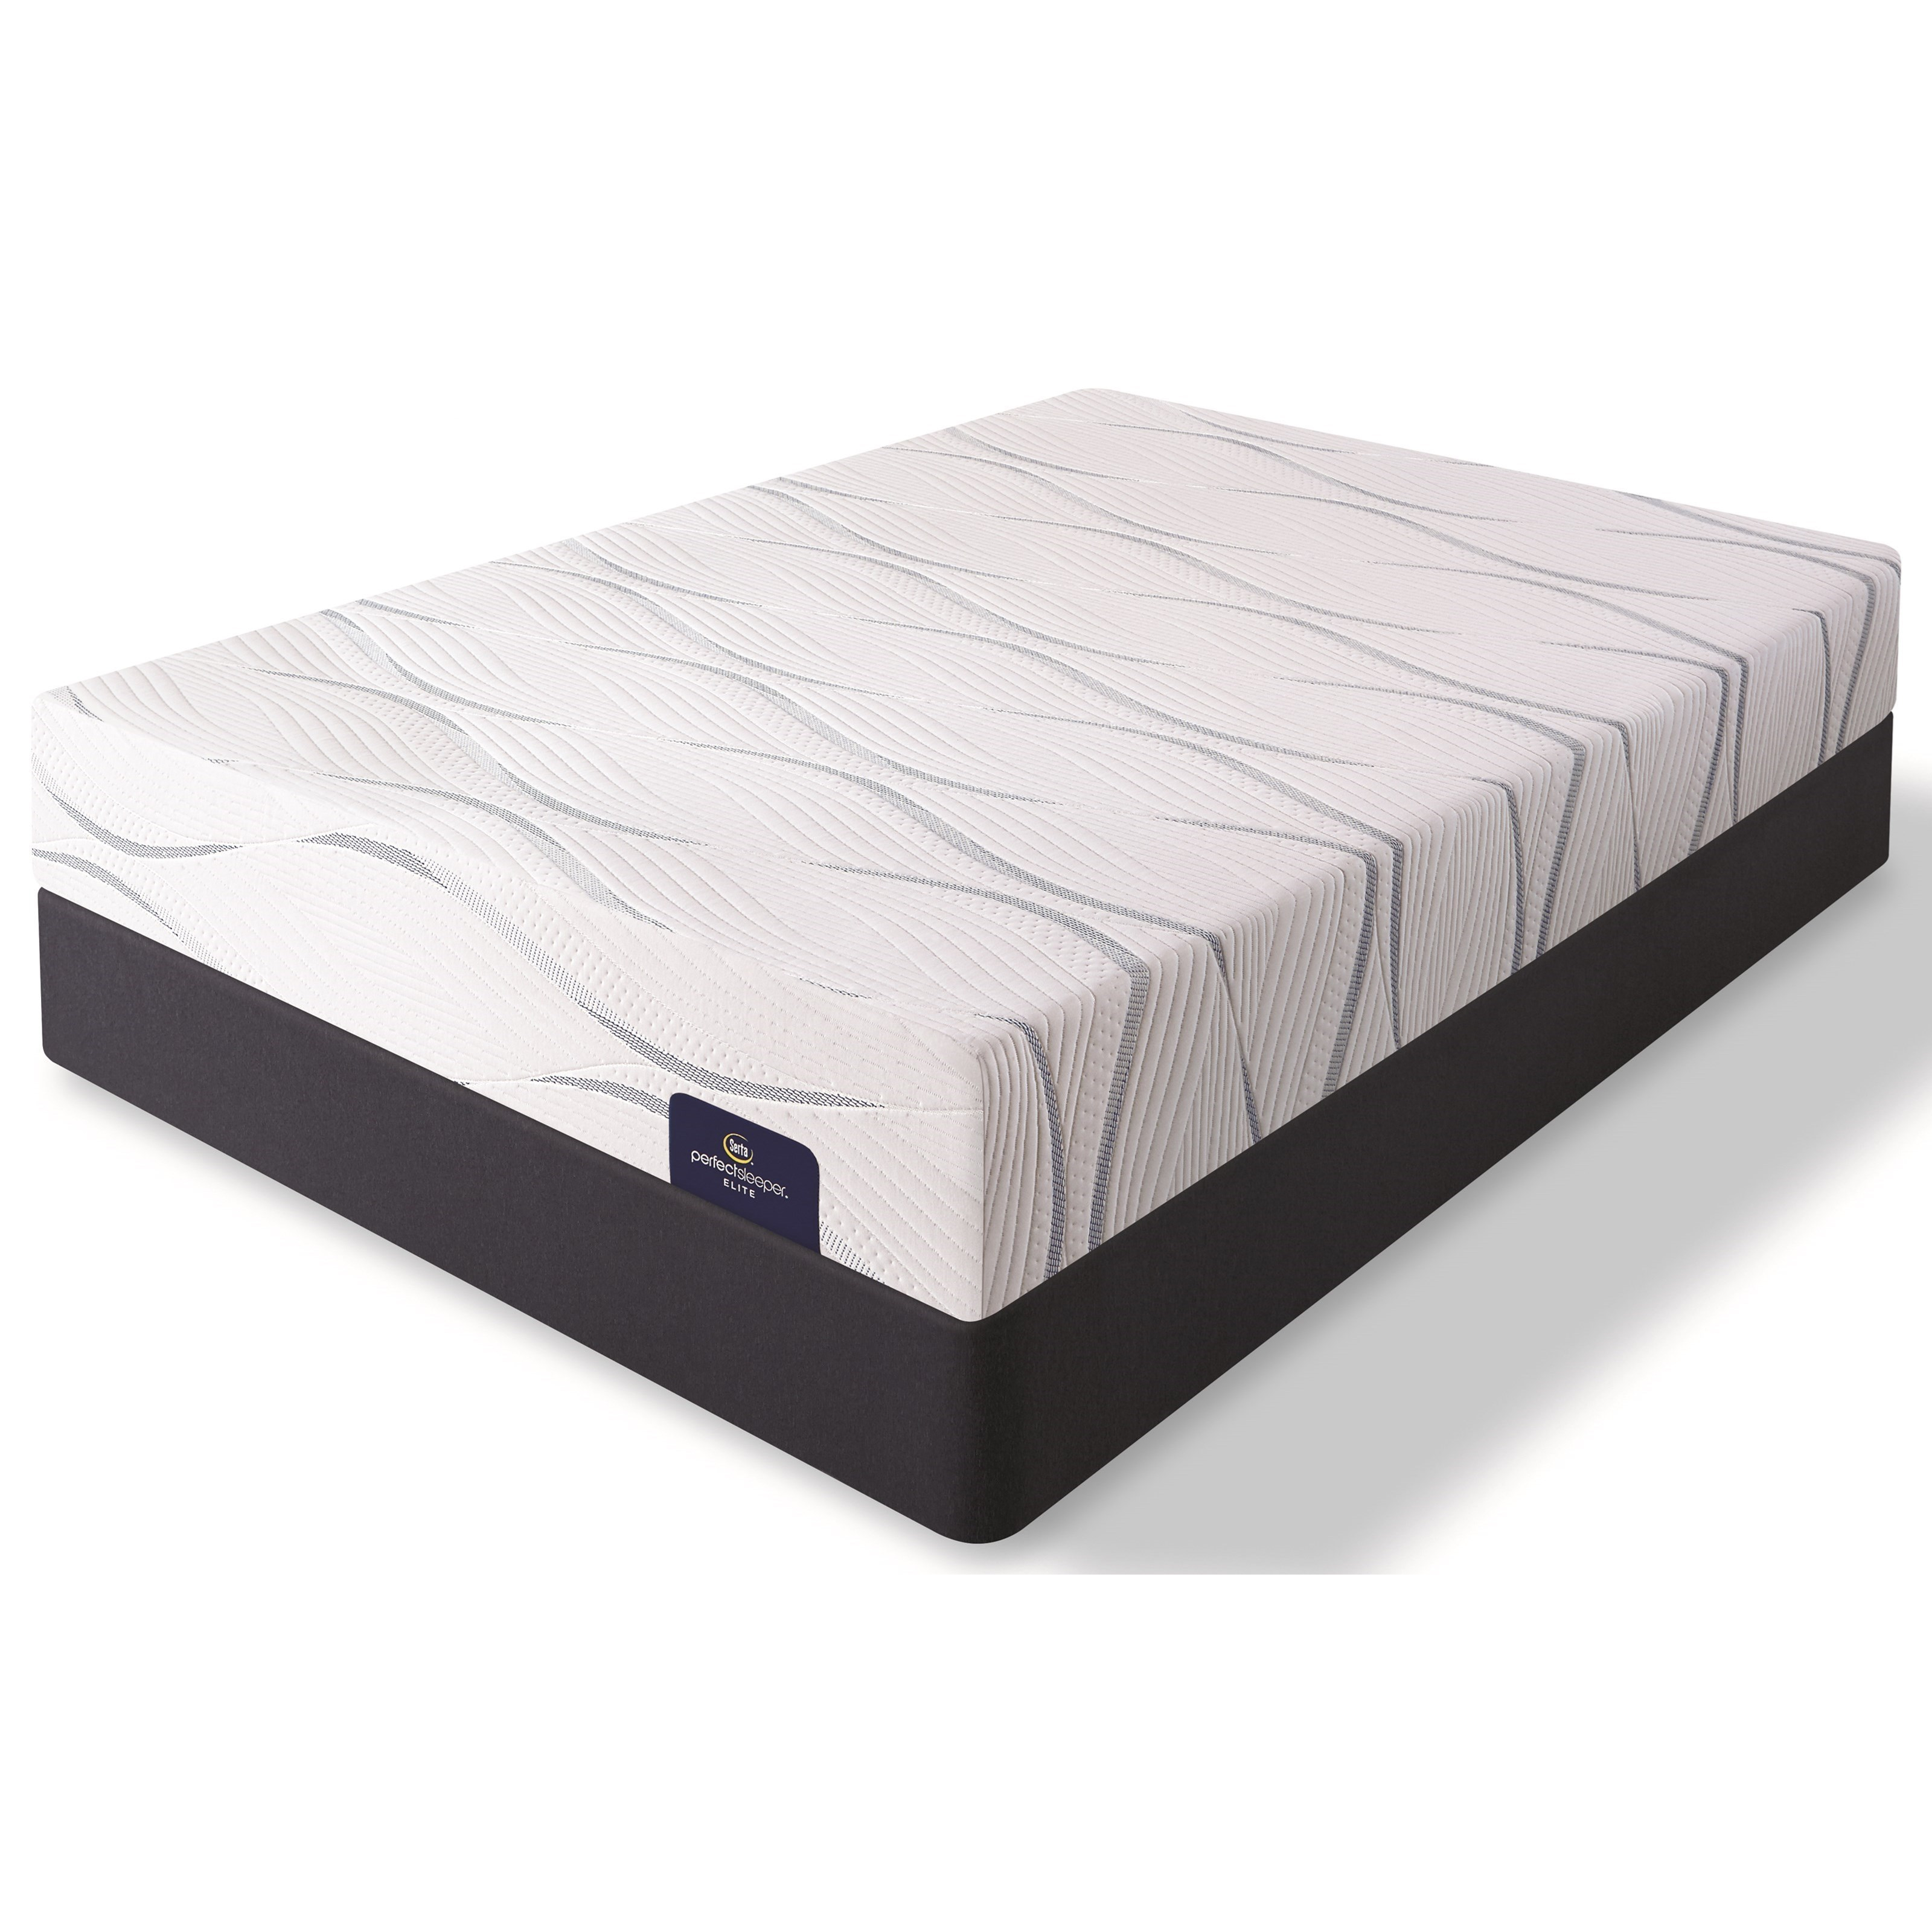 Memory Foam Mattress Too Firm Serta Merriam Ii Firm 500084938 1050 Psfndtn Q Queen Firm Gel